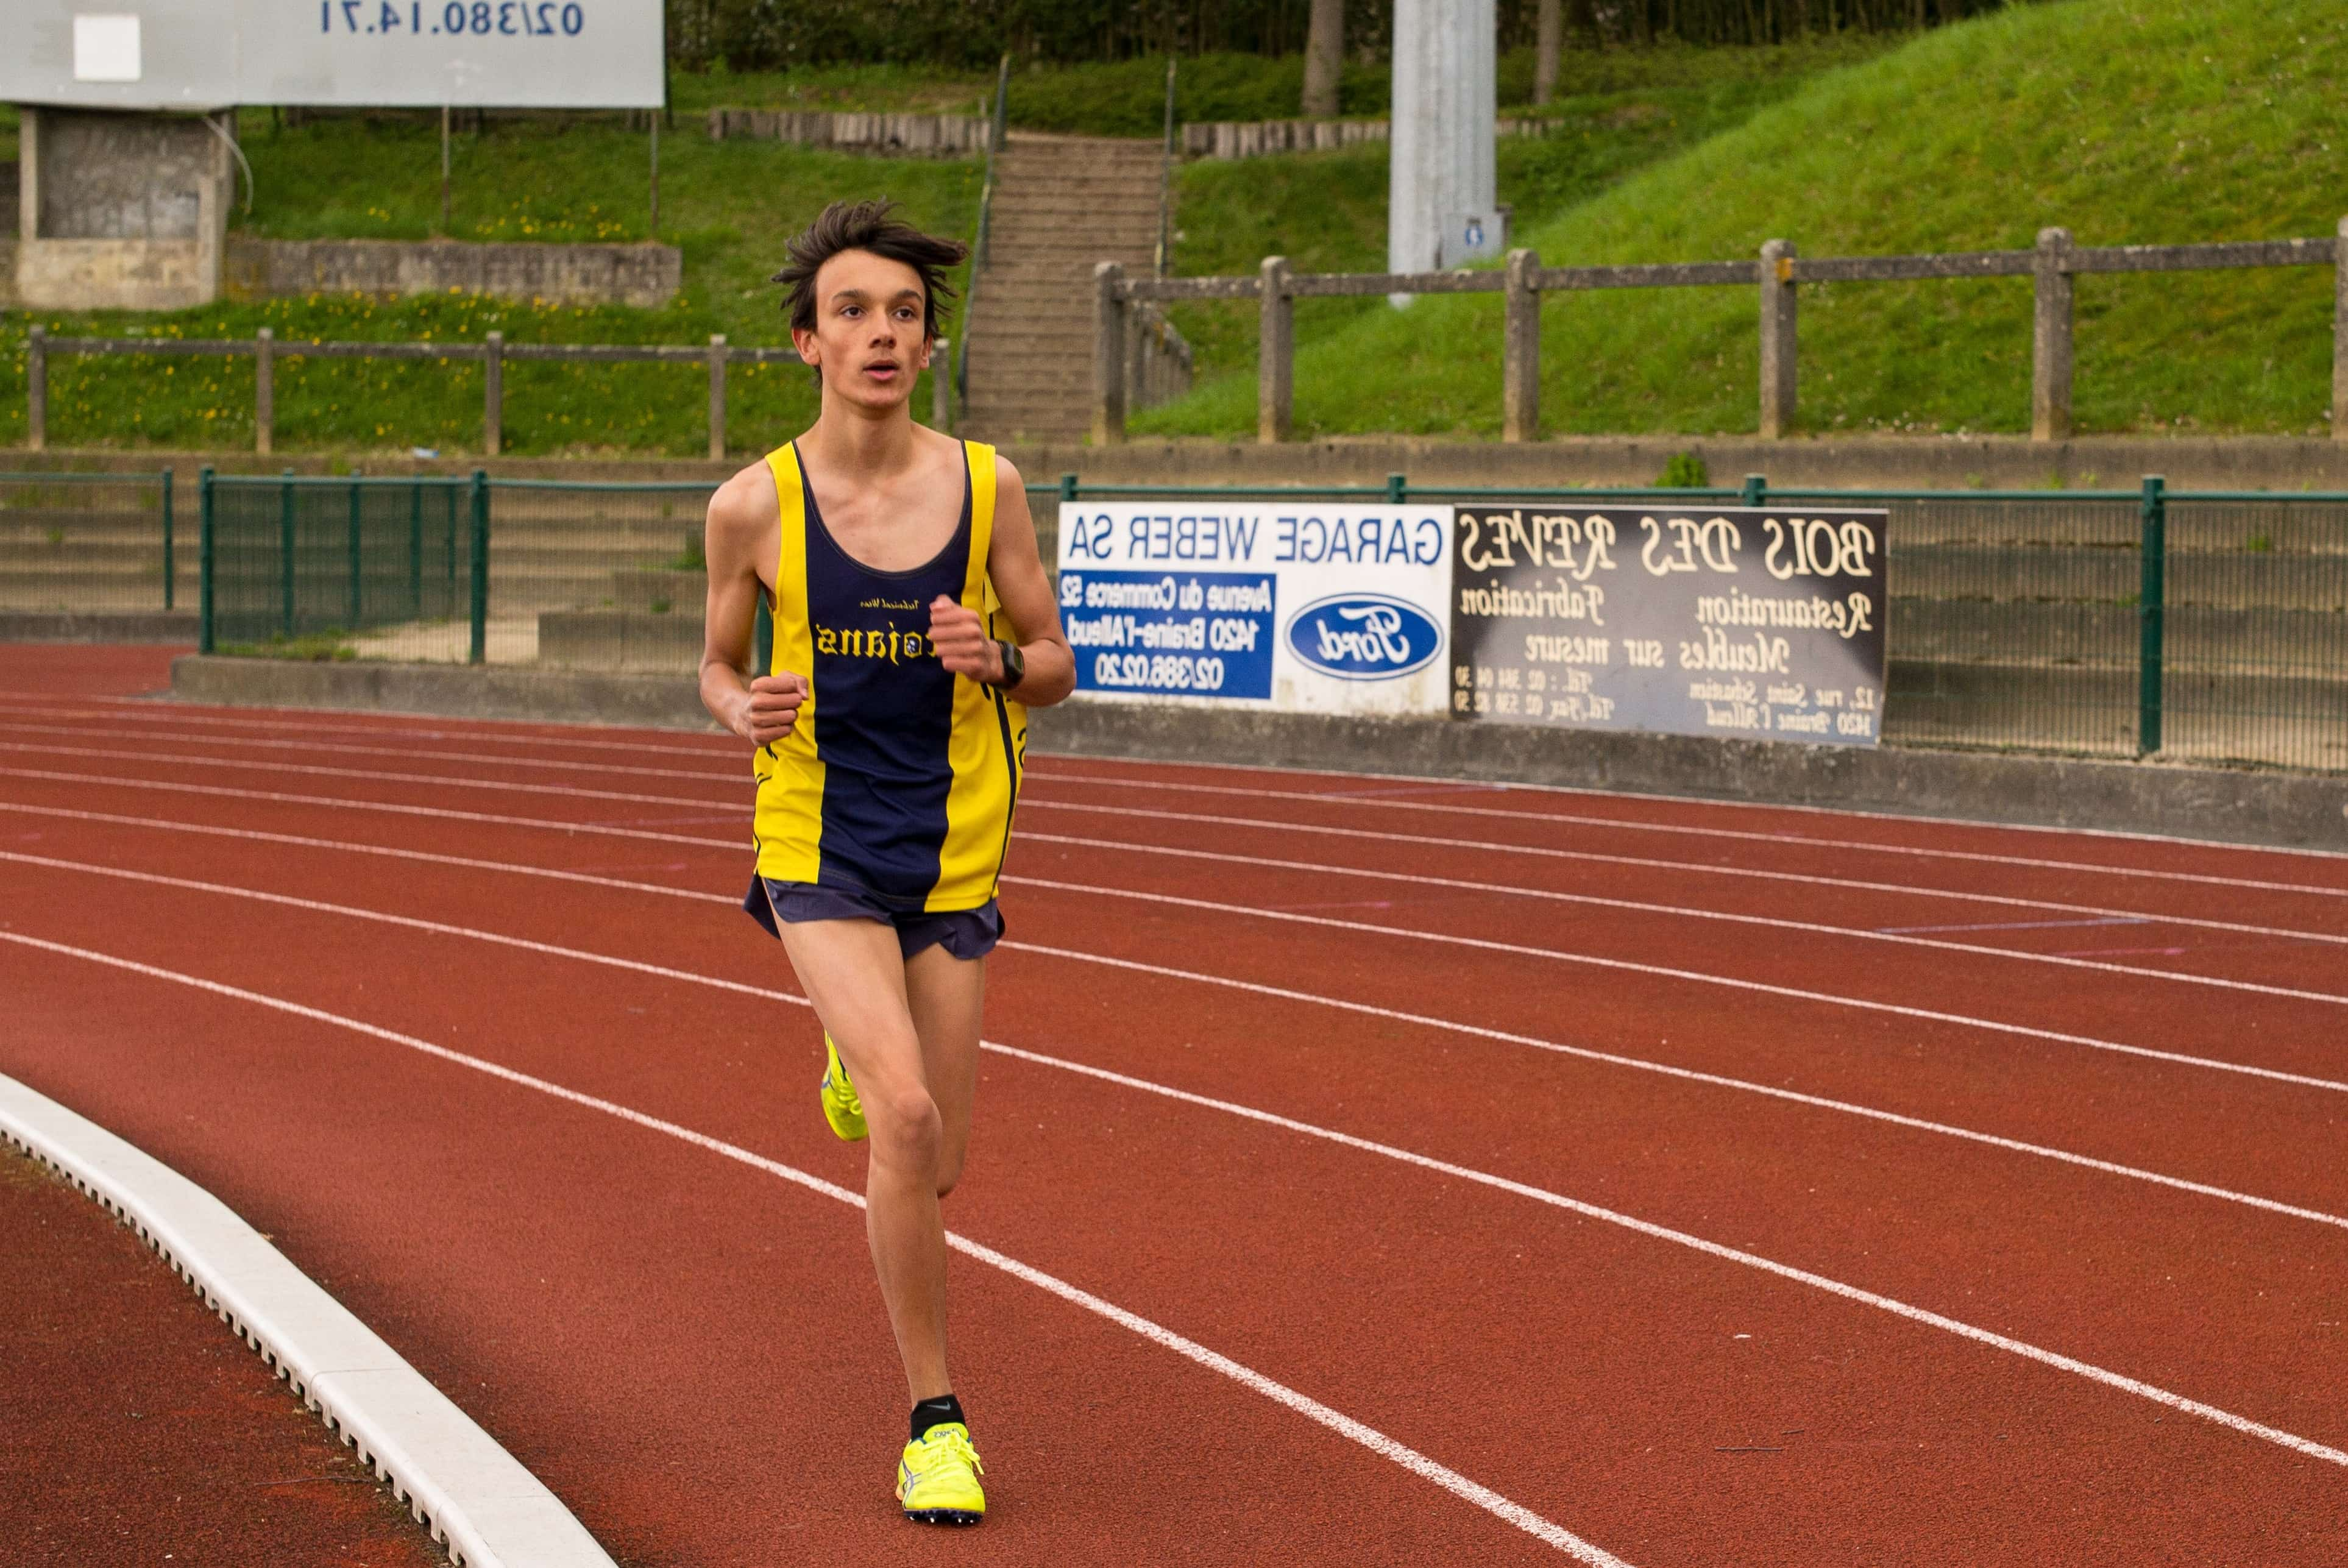 Free picture: competition, start, athlete, race, effort, stadium, foot race, runner